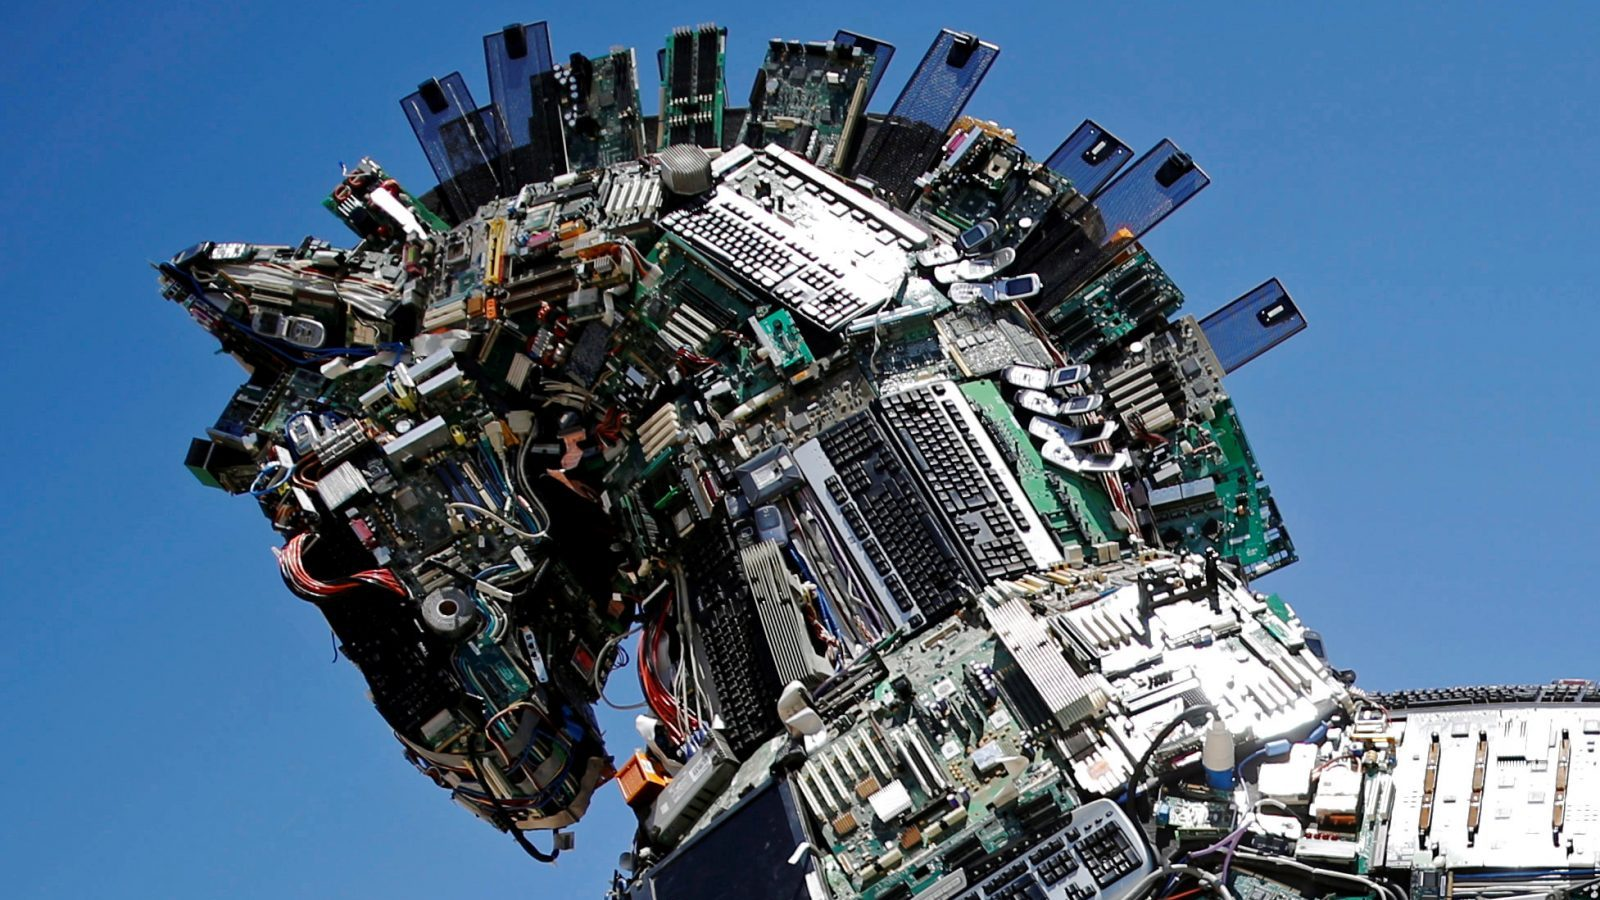 """A close-up of the head of a """"Cyber Horse"""", made from thousands of infected computer and cell phone bits, is seen on display at the entrance to the annual Cyberweek conference at Tel Aviv University, Israel June 20, 2016. REUTERS/Amir Cohen/File Photo - RTX2HJV3"""